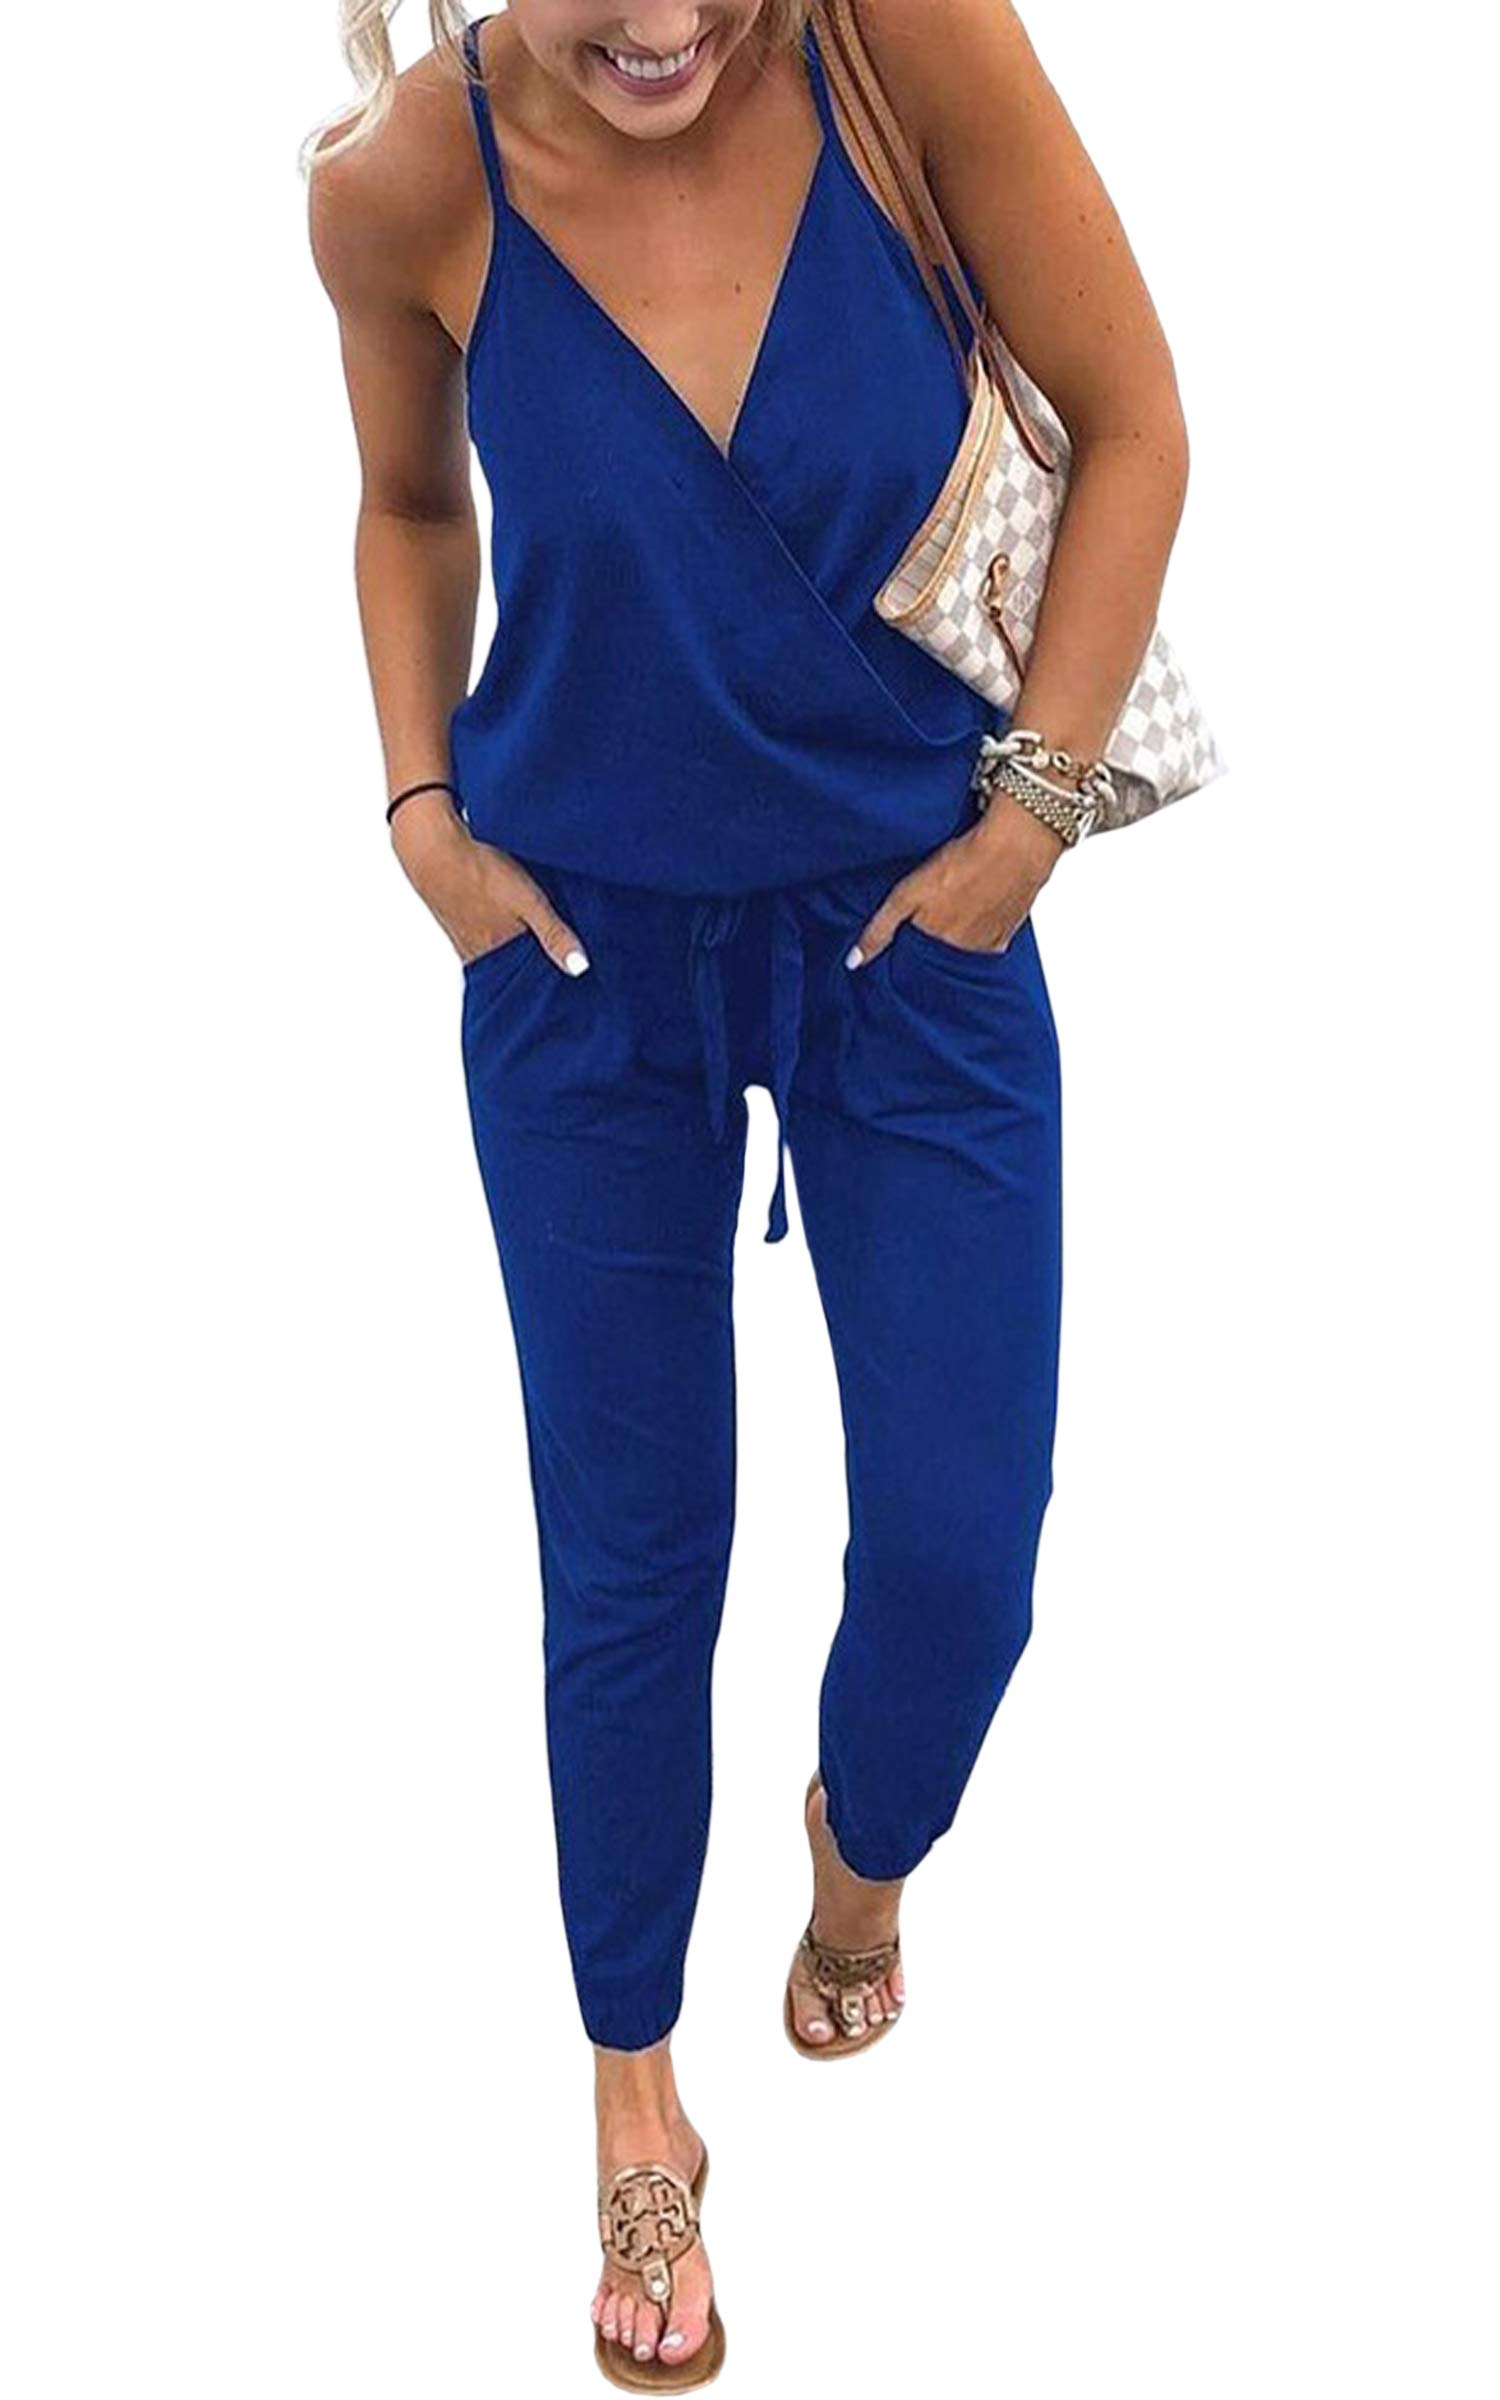 ECOWISH Women's V Neck Spaghetti Strap Drawstring Waisted Long Pants Jumpsuit Rompers Blue M